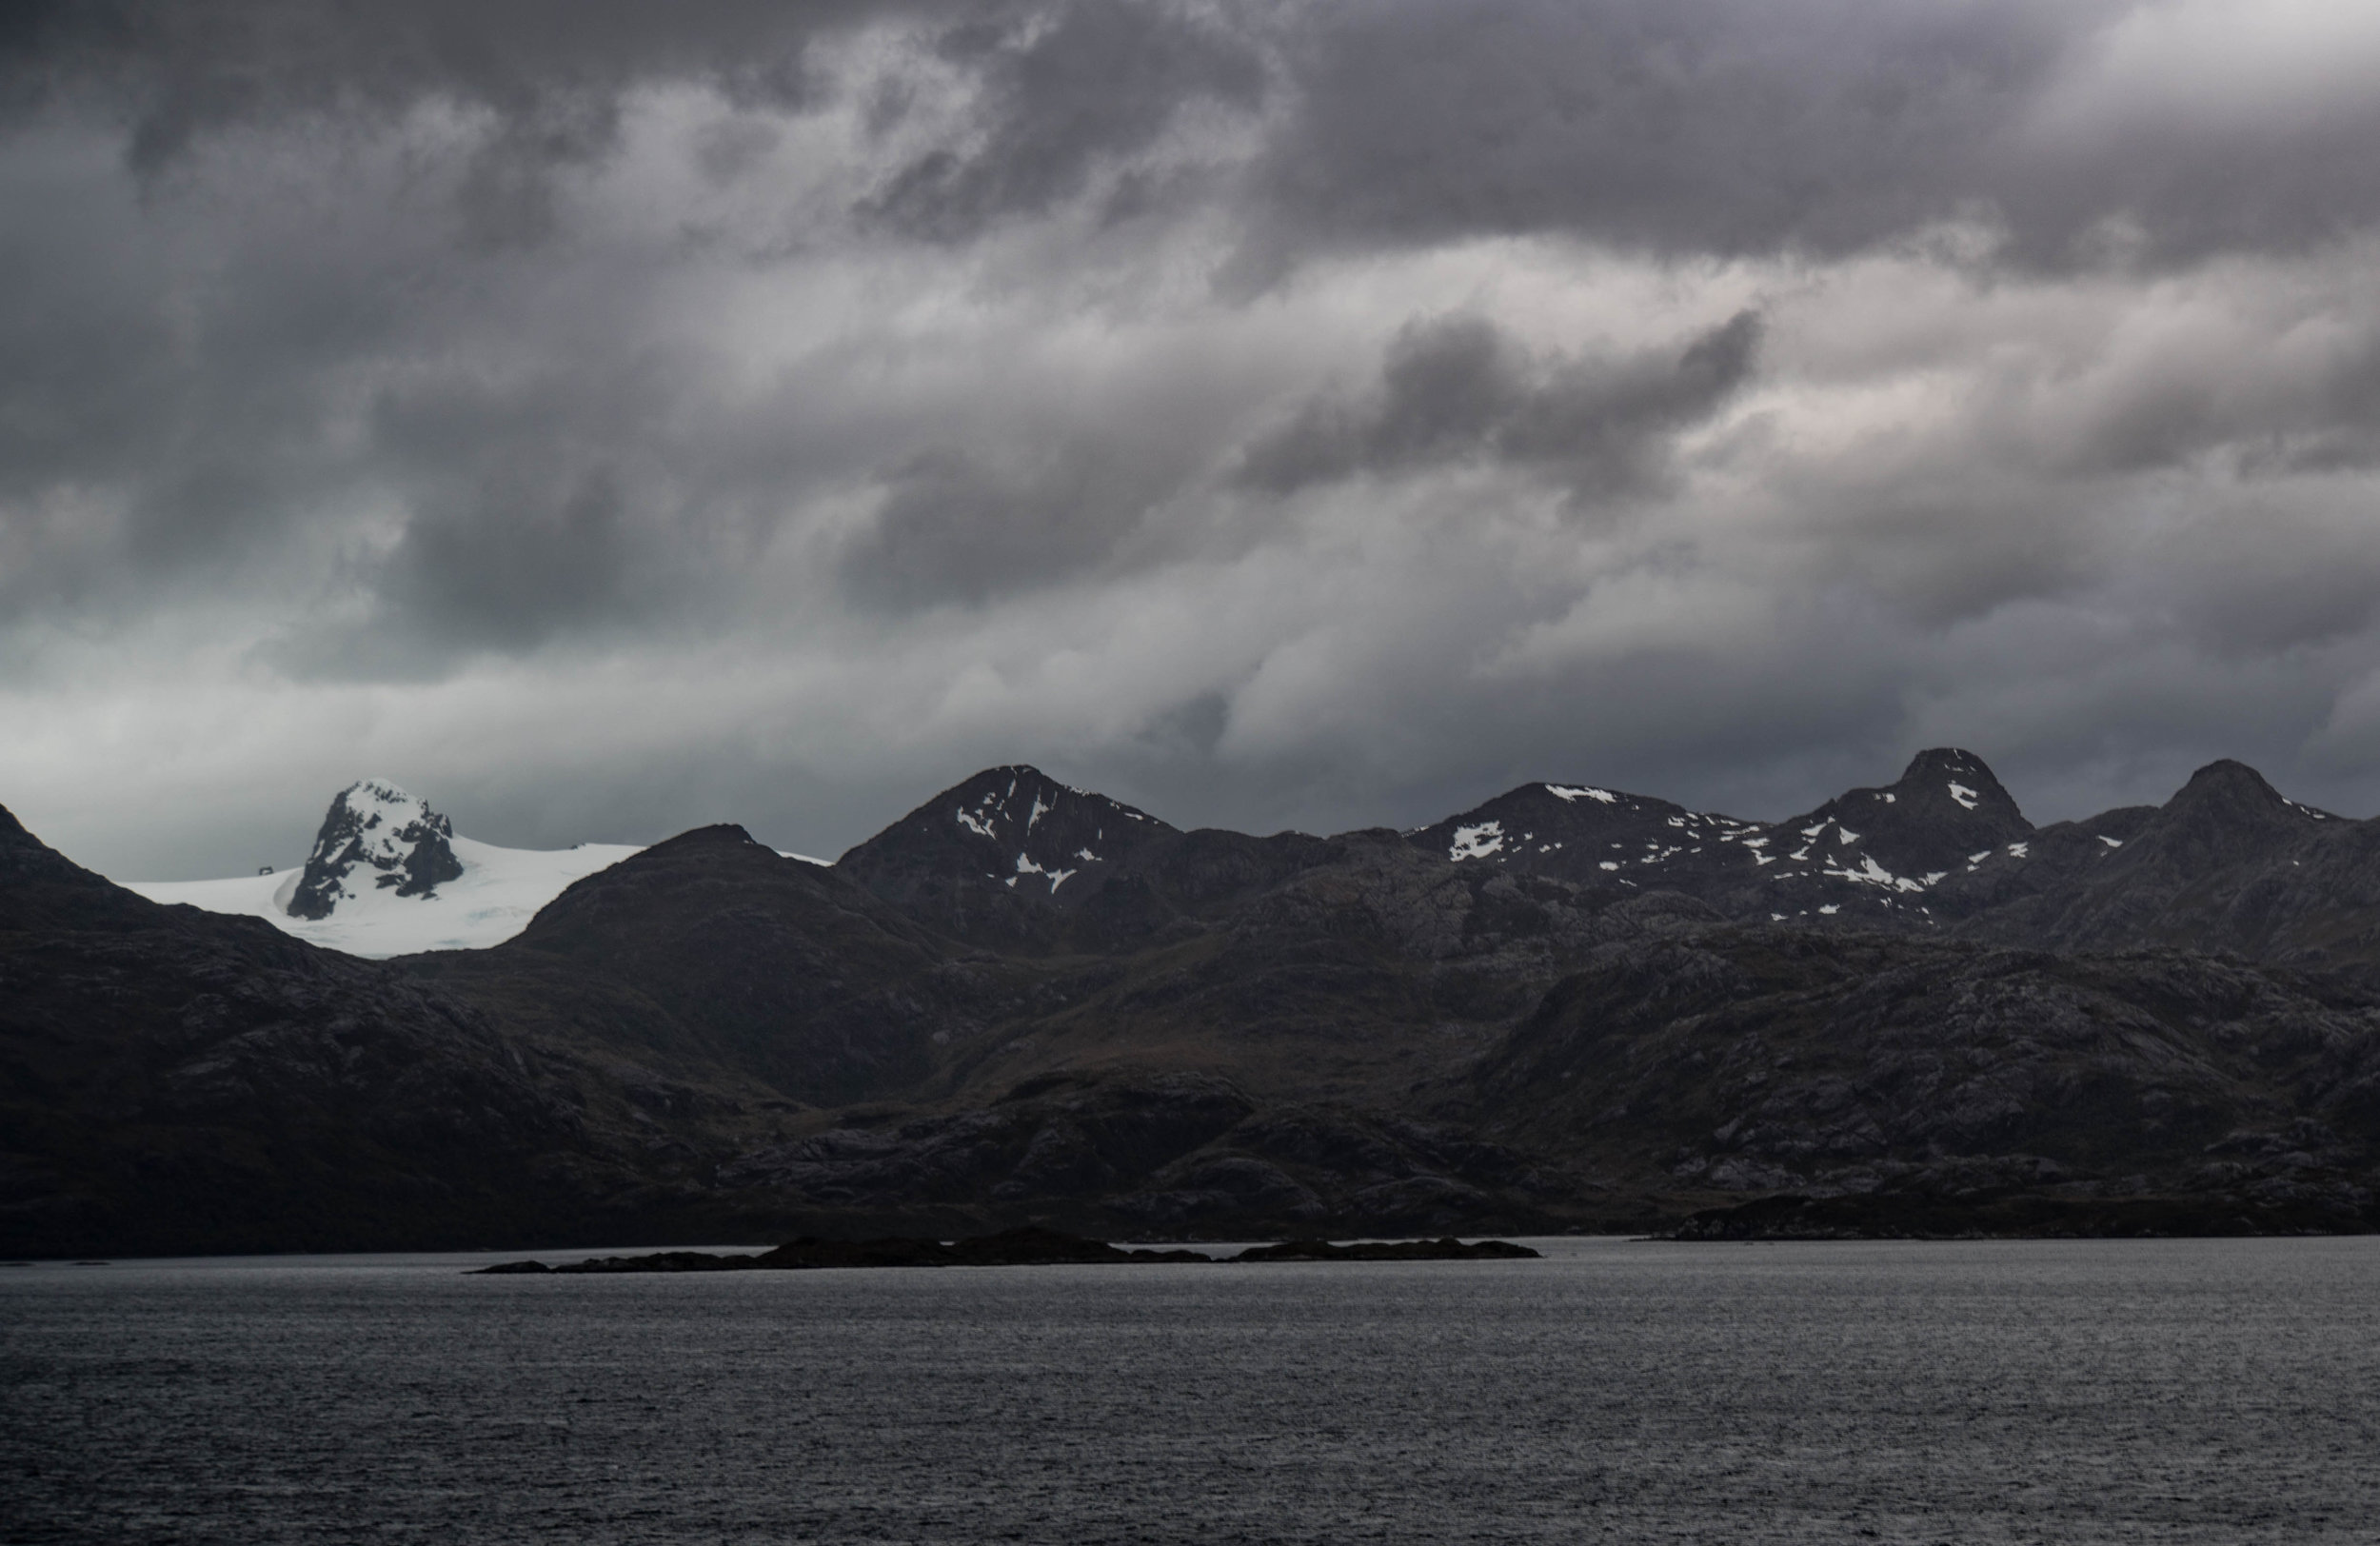 Stunning scenery from dawn to dusk. Chilean Fjords.